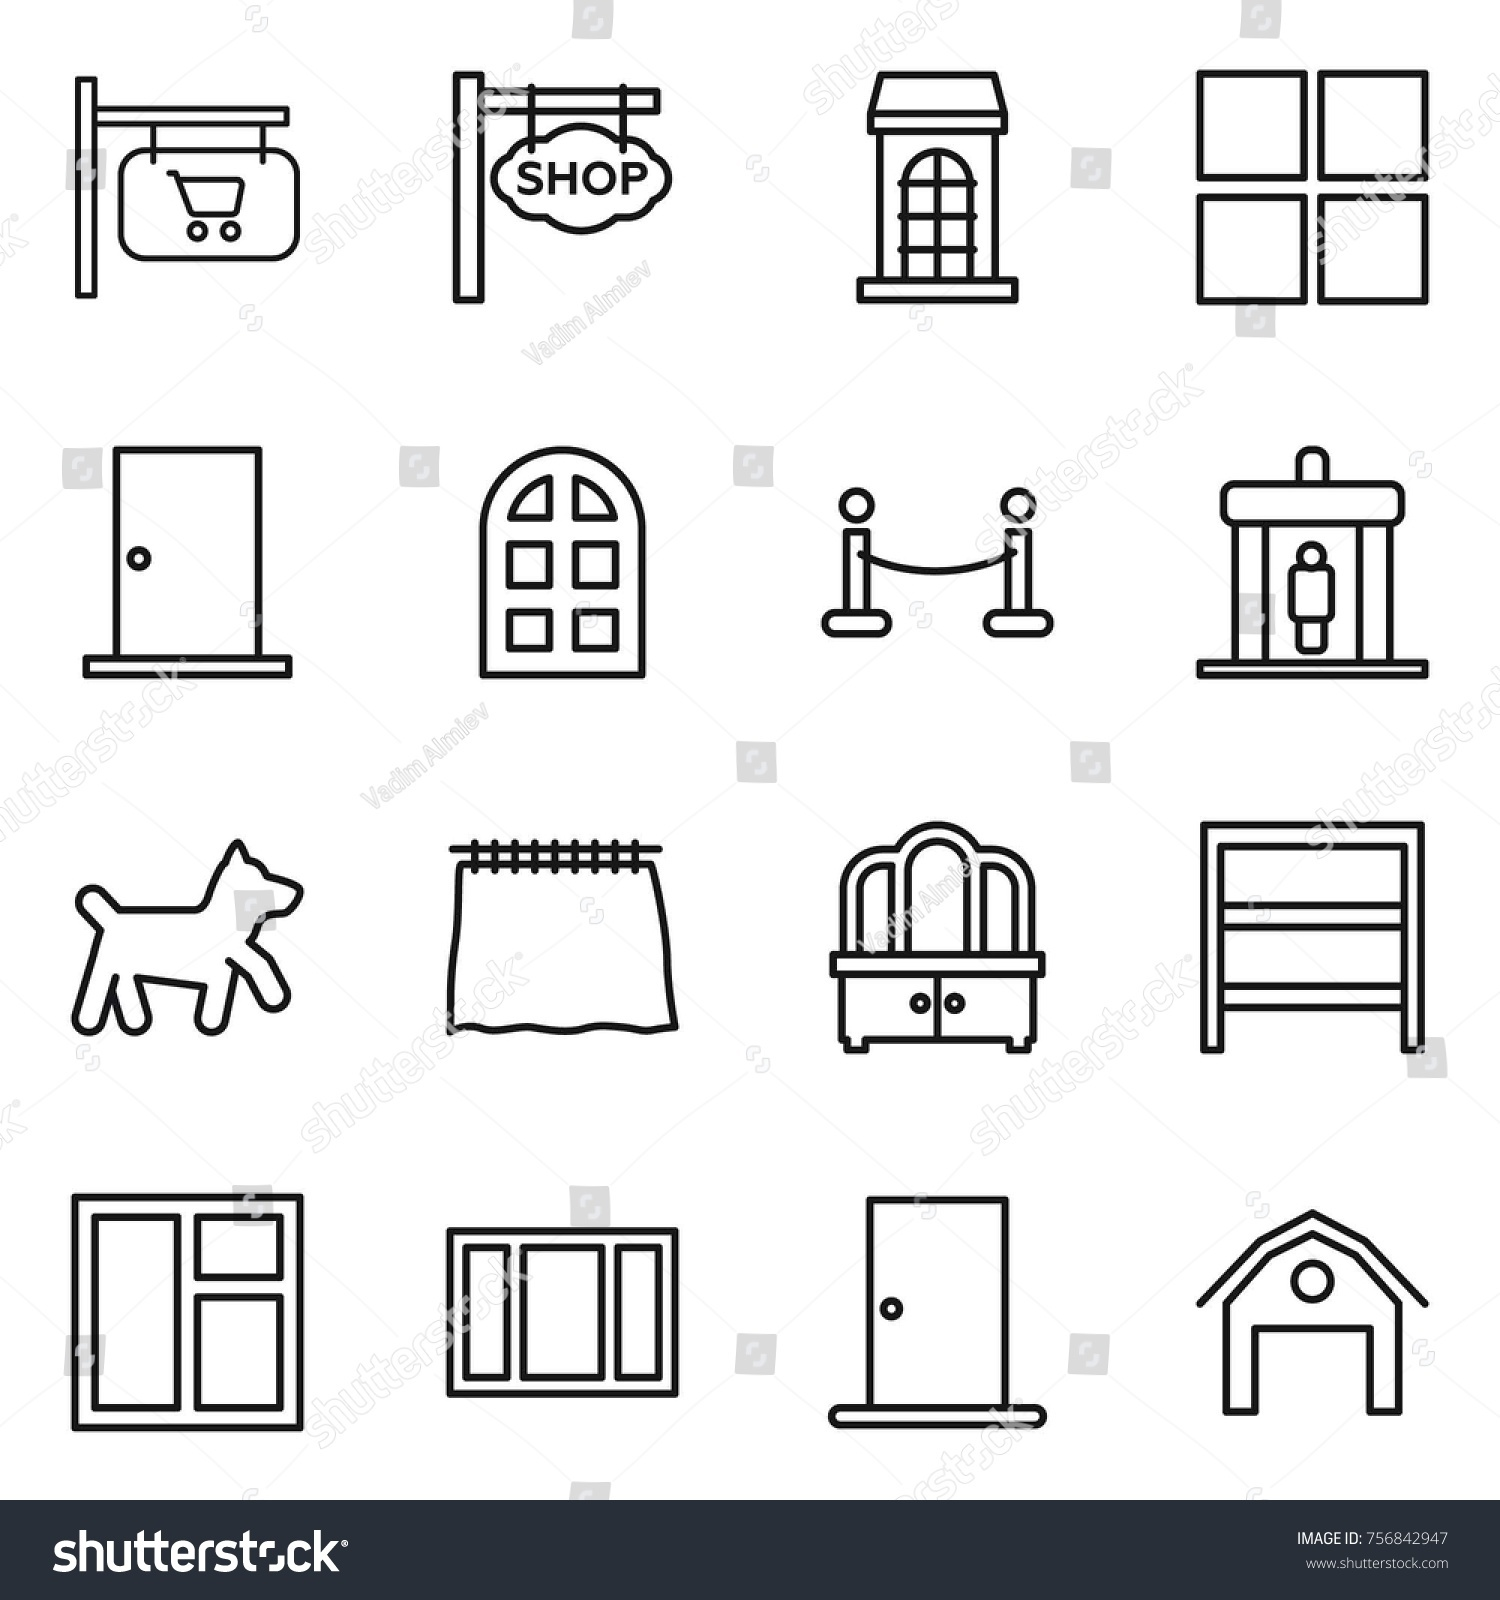 hight resolution of thin line icon set shop signboard building window door arch